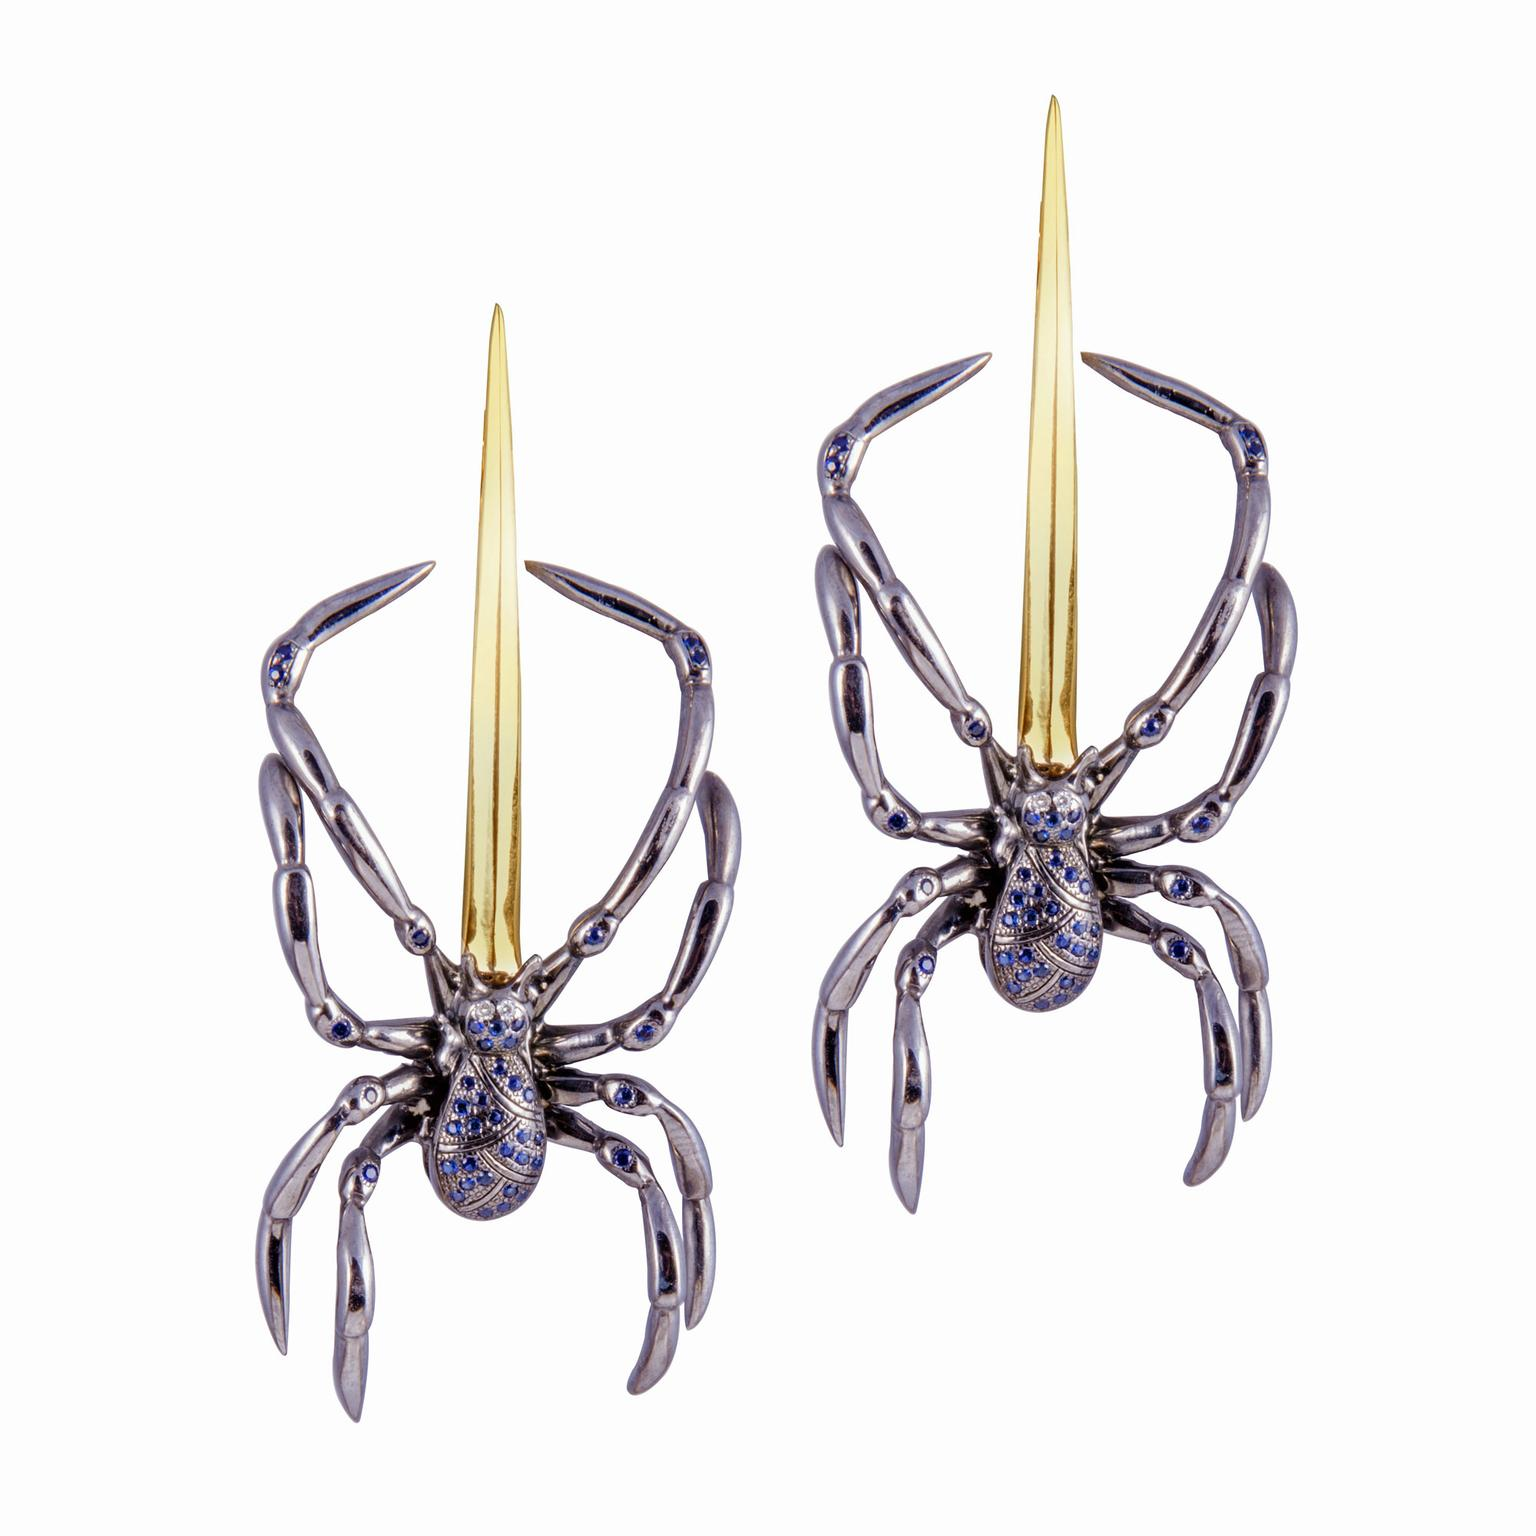 Gaelle Khouri spider earrings